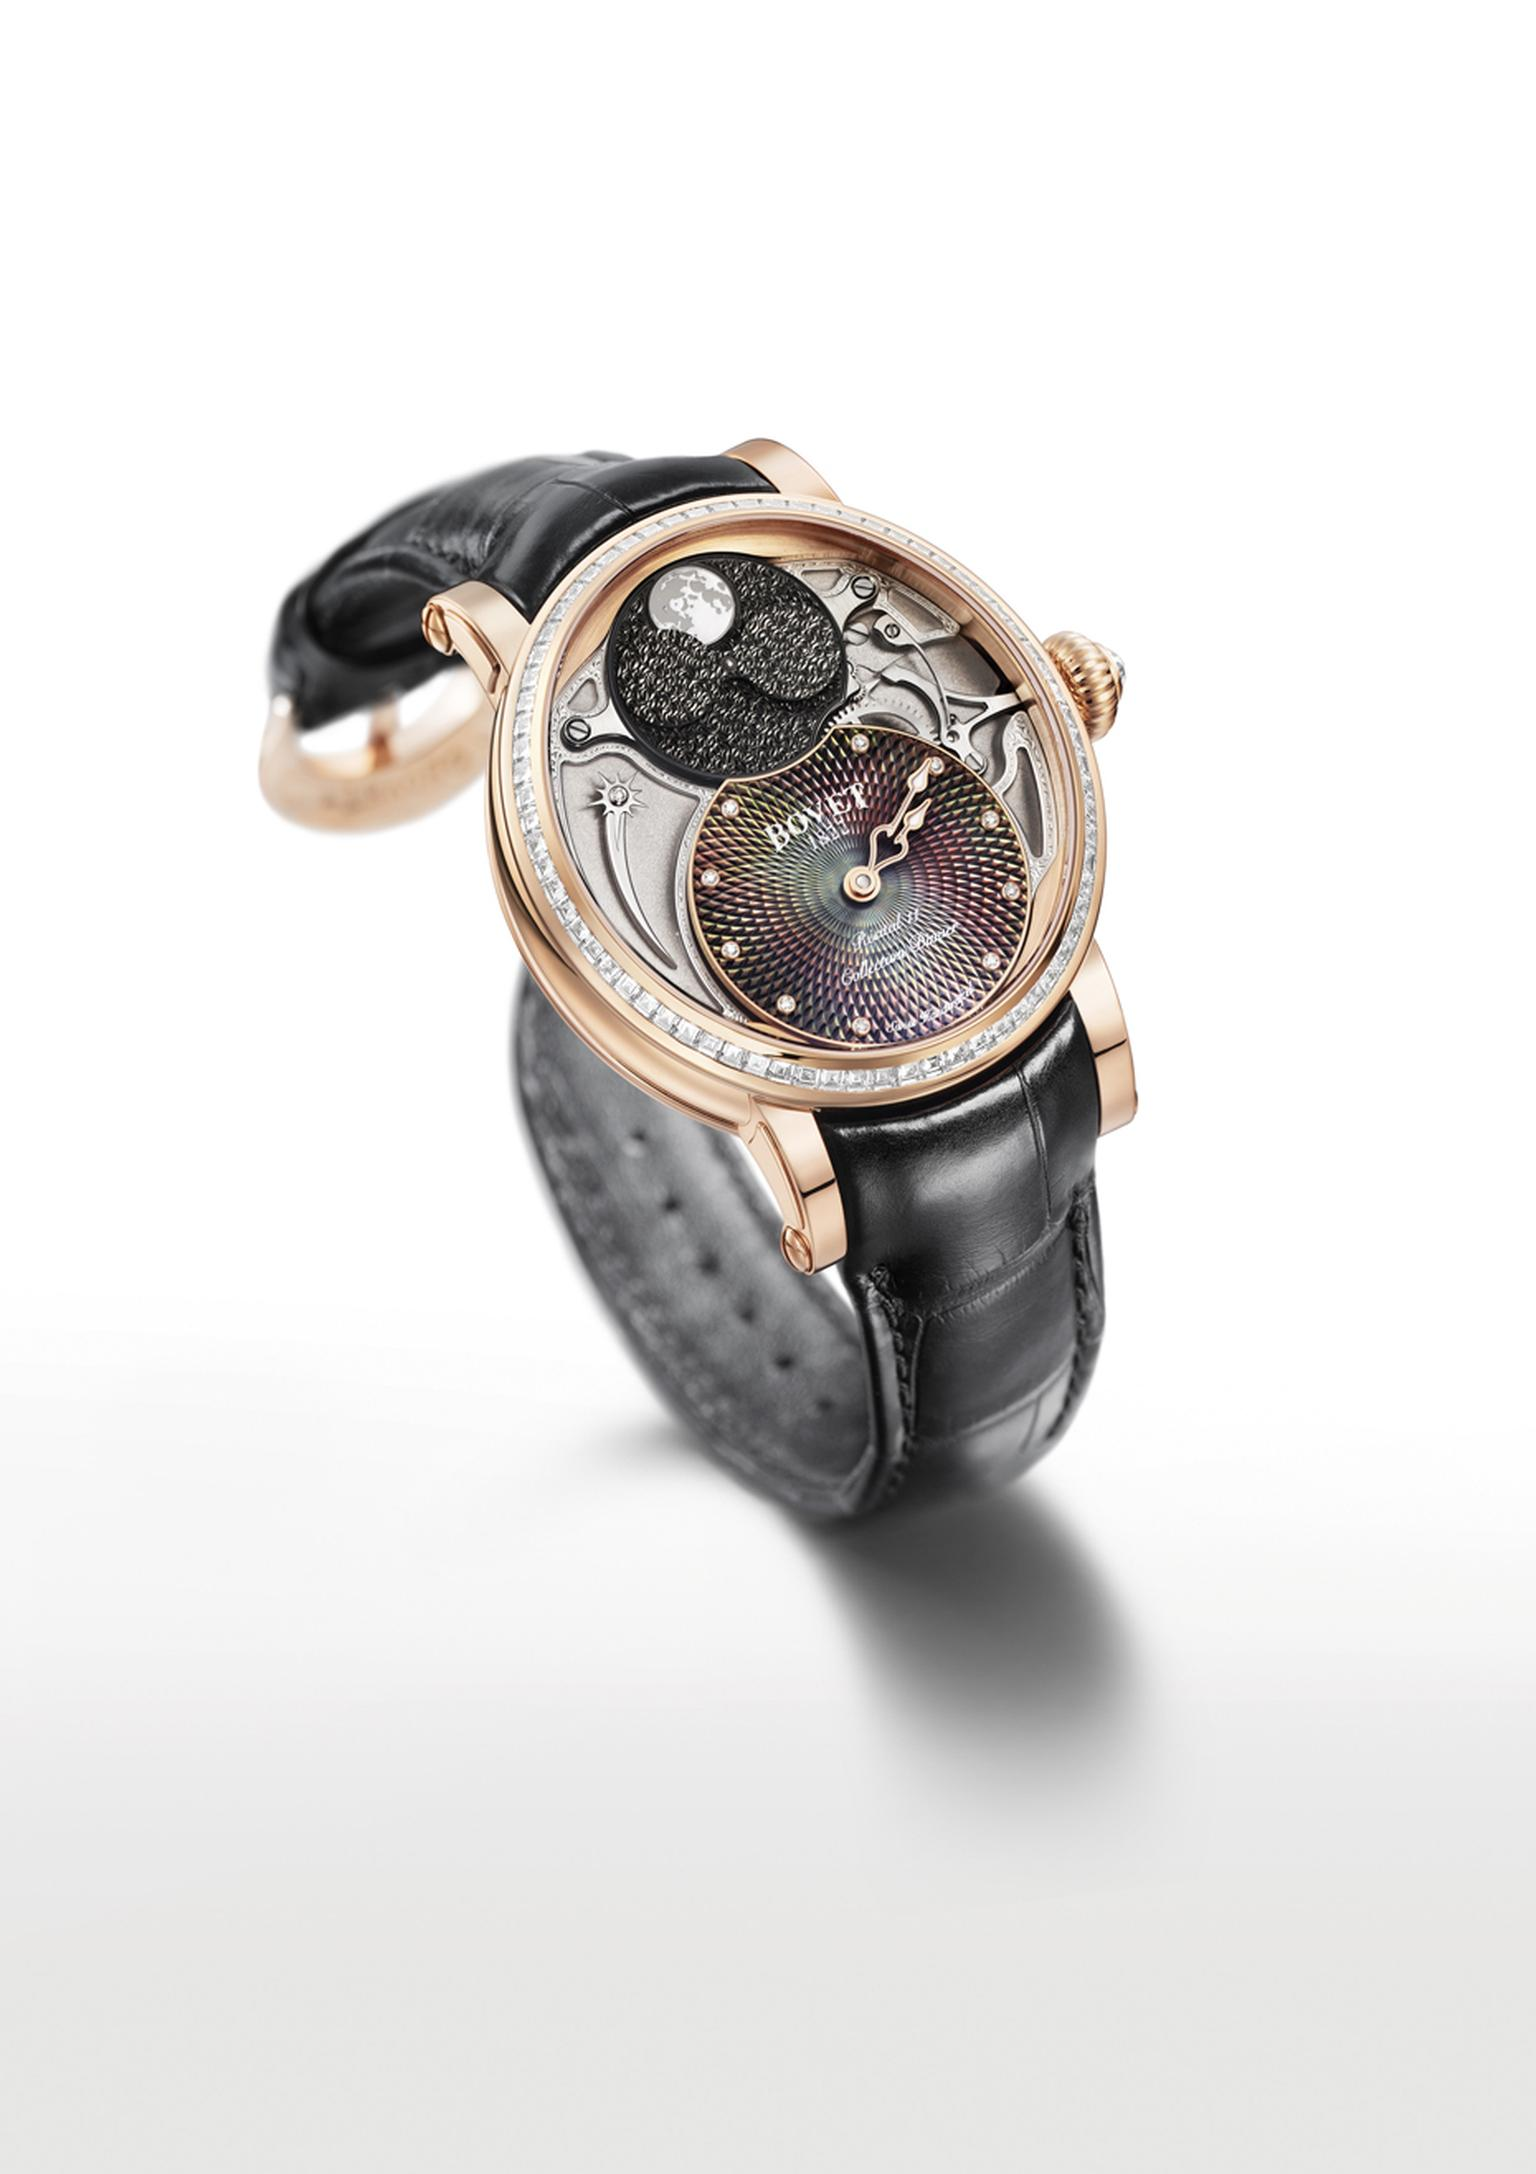 Bovet's Recital 11 Miss Alexandra watch features unusual-shaped hour and minute hands that form a heart once an hour when they meet